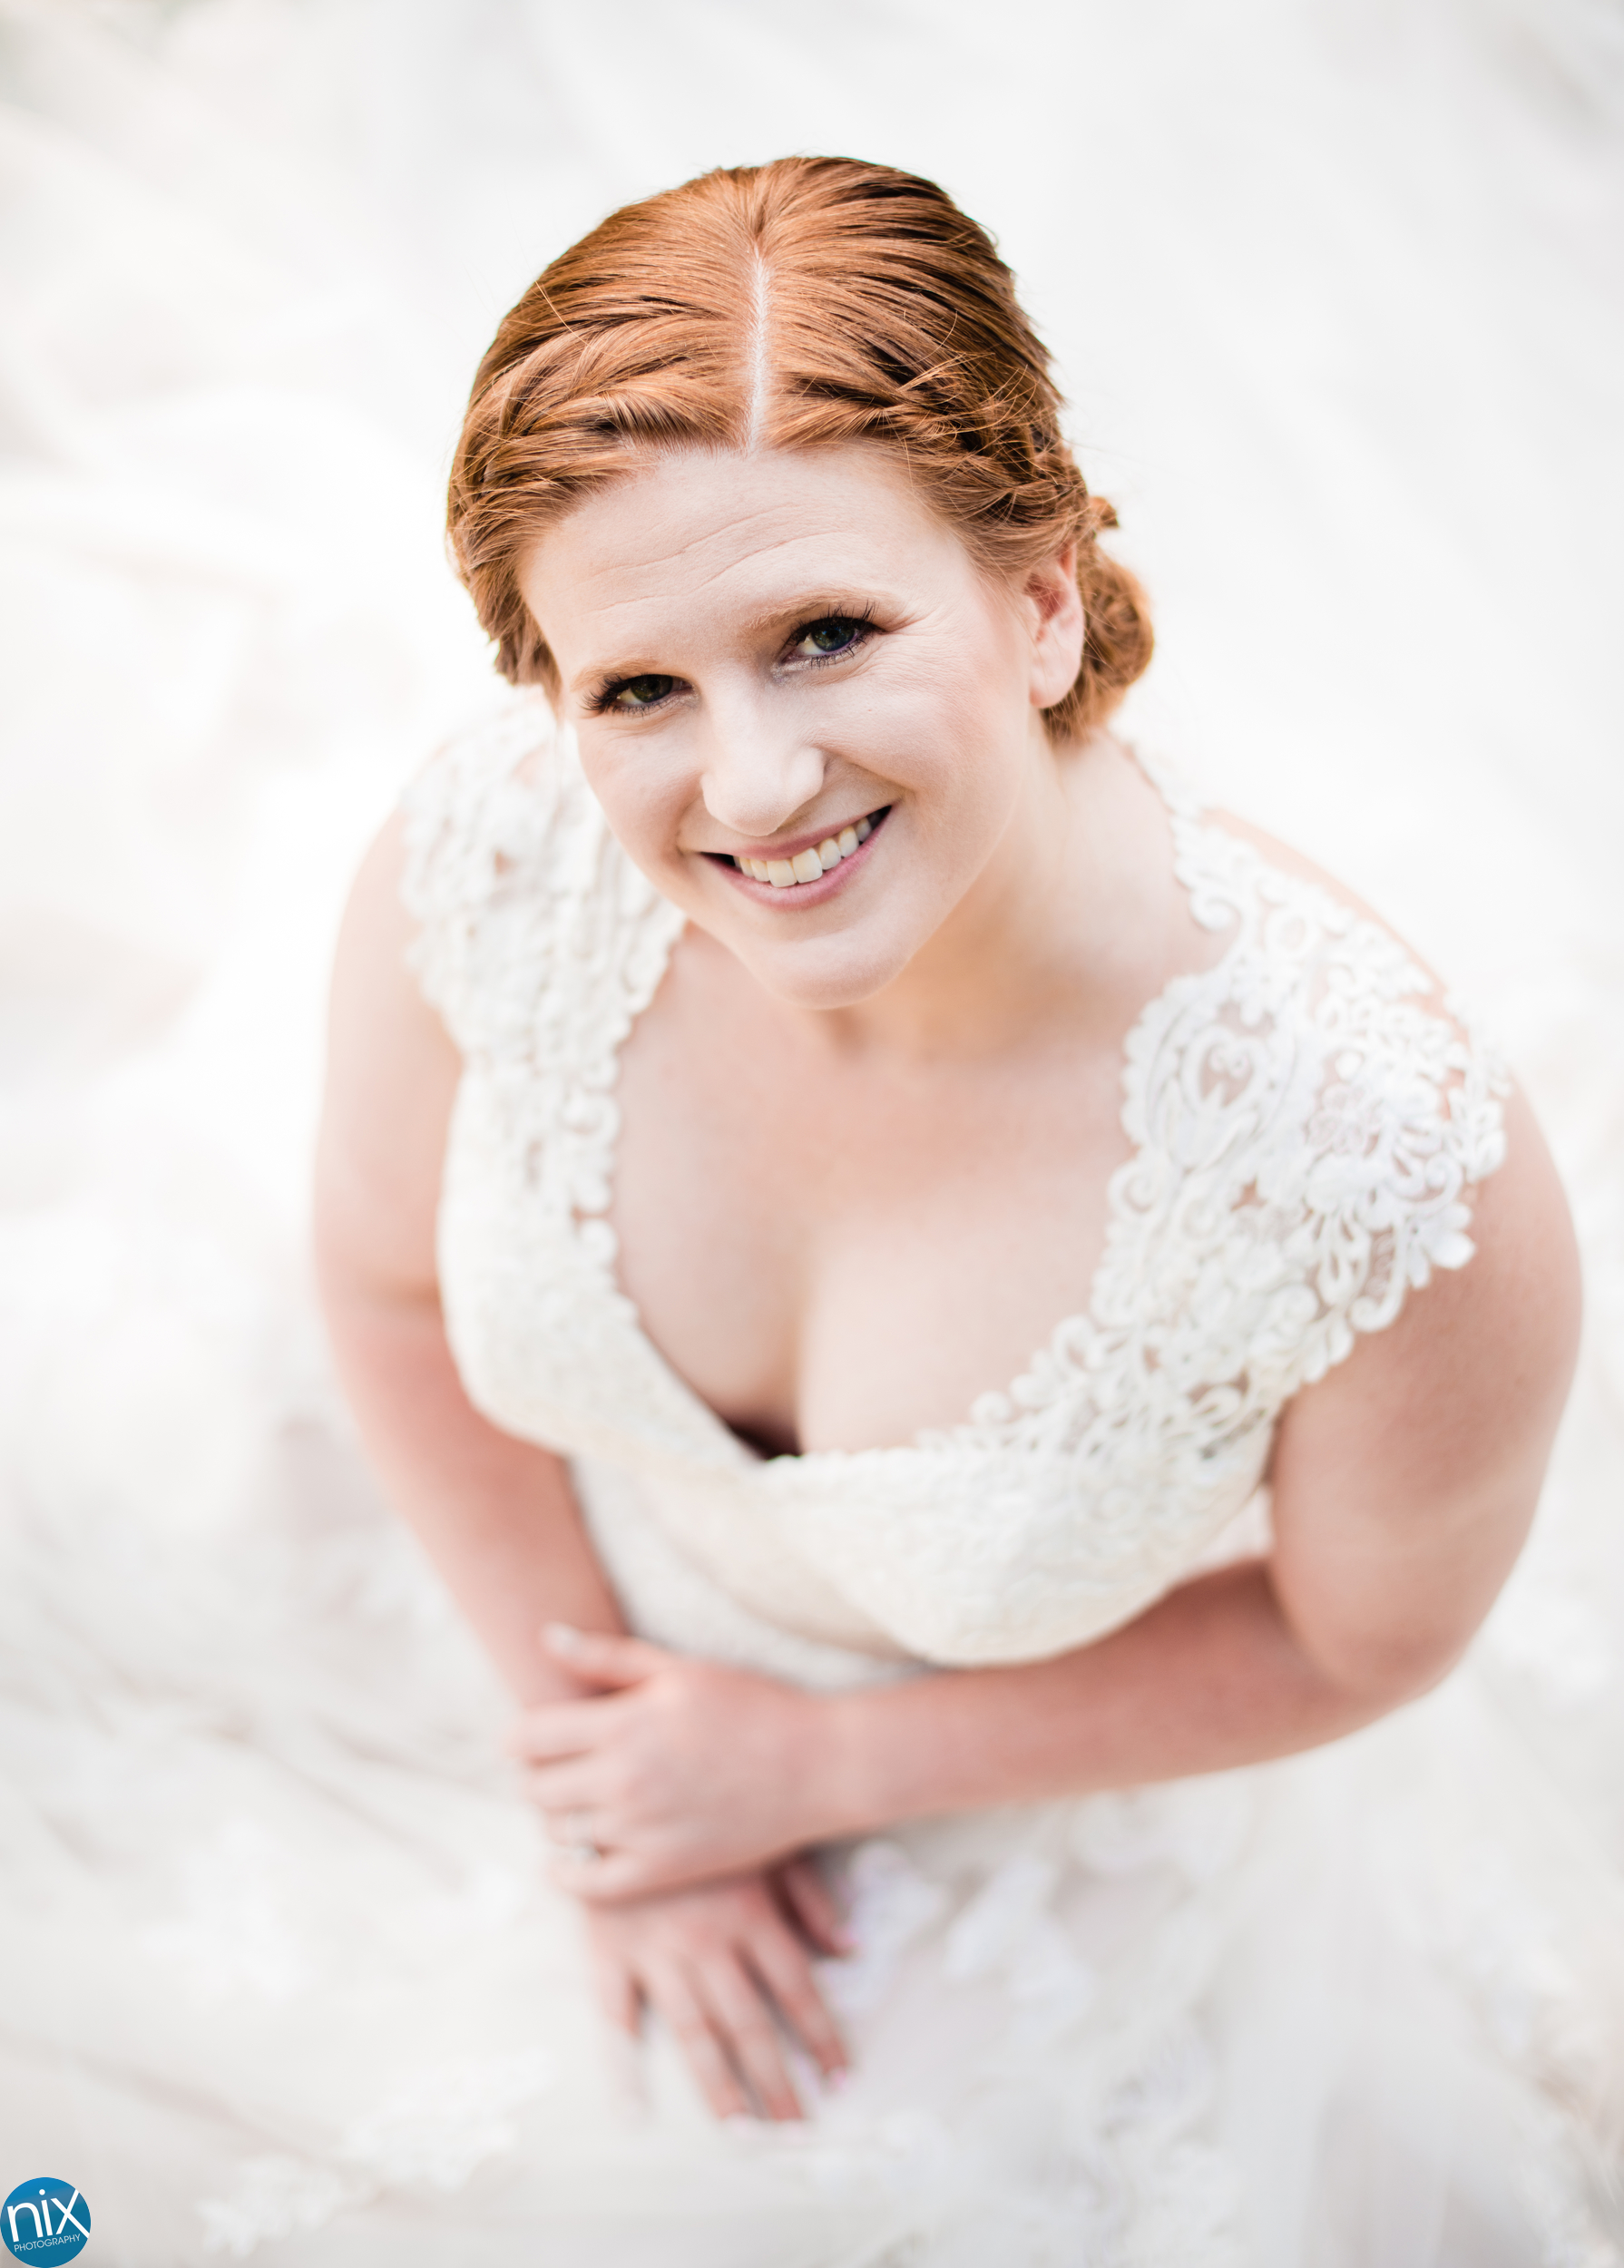 bride sitting in wedding dress.jpg